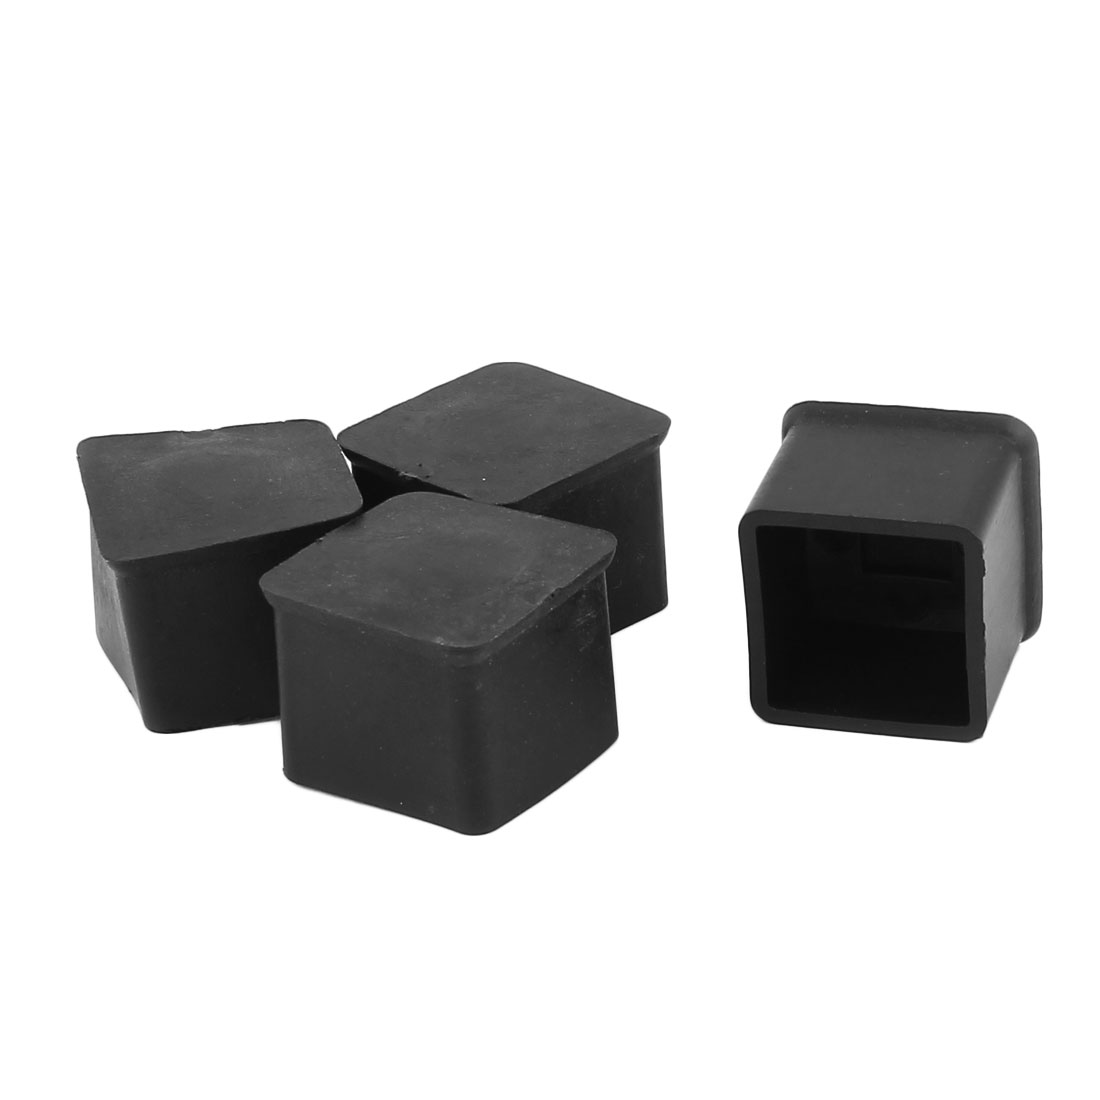 4Pcs Square Rubber Furniture Table Foot Leg Cover Pad Floor Protector 25 x 25 x 21mm